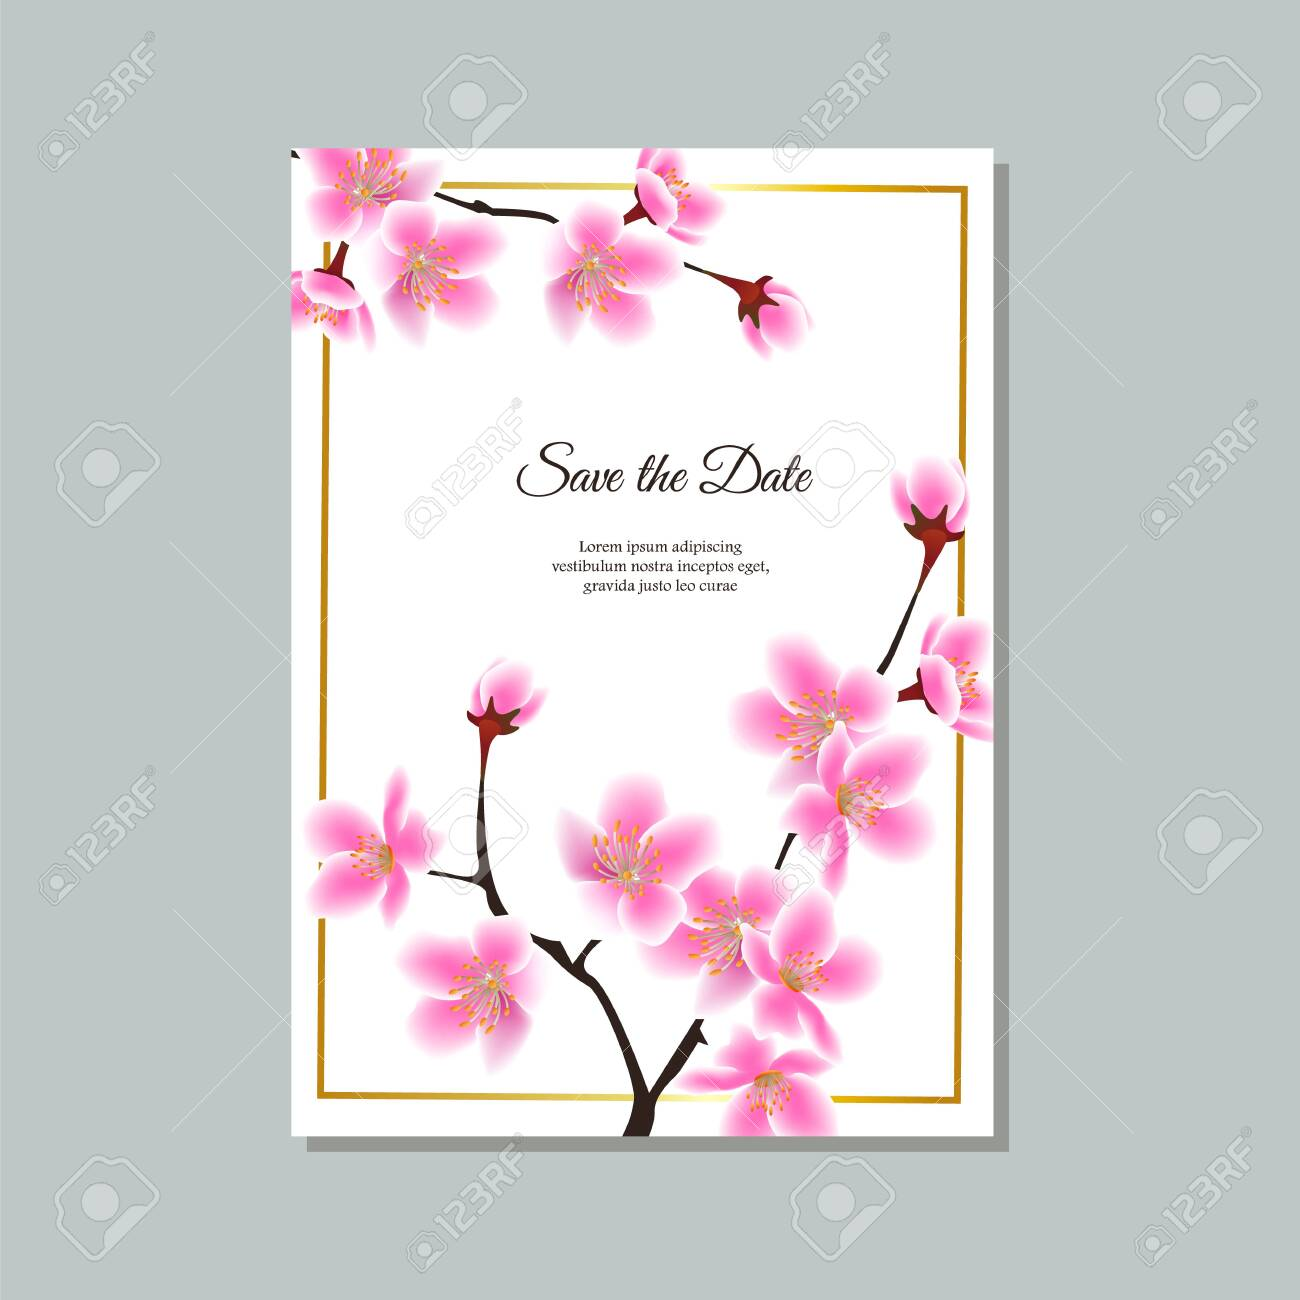 Save The Date Card Wedding Invitation Or Thank You Note With